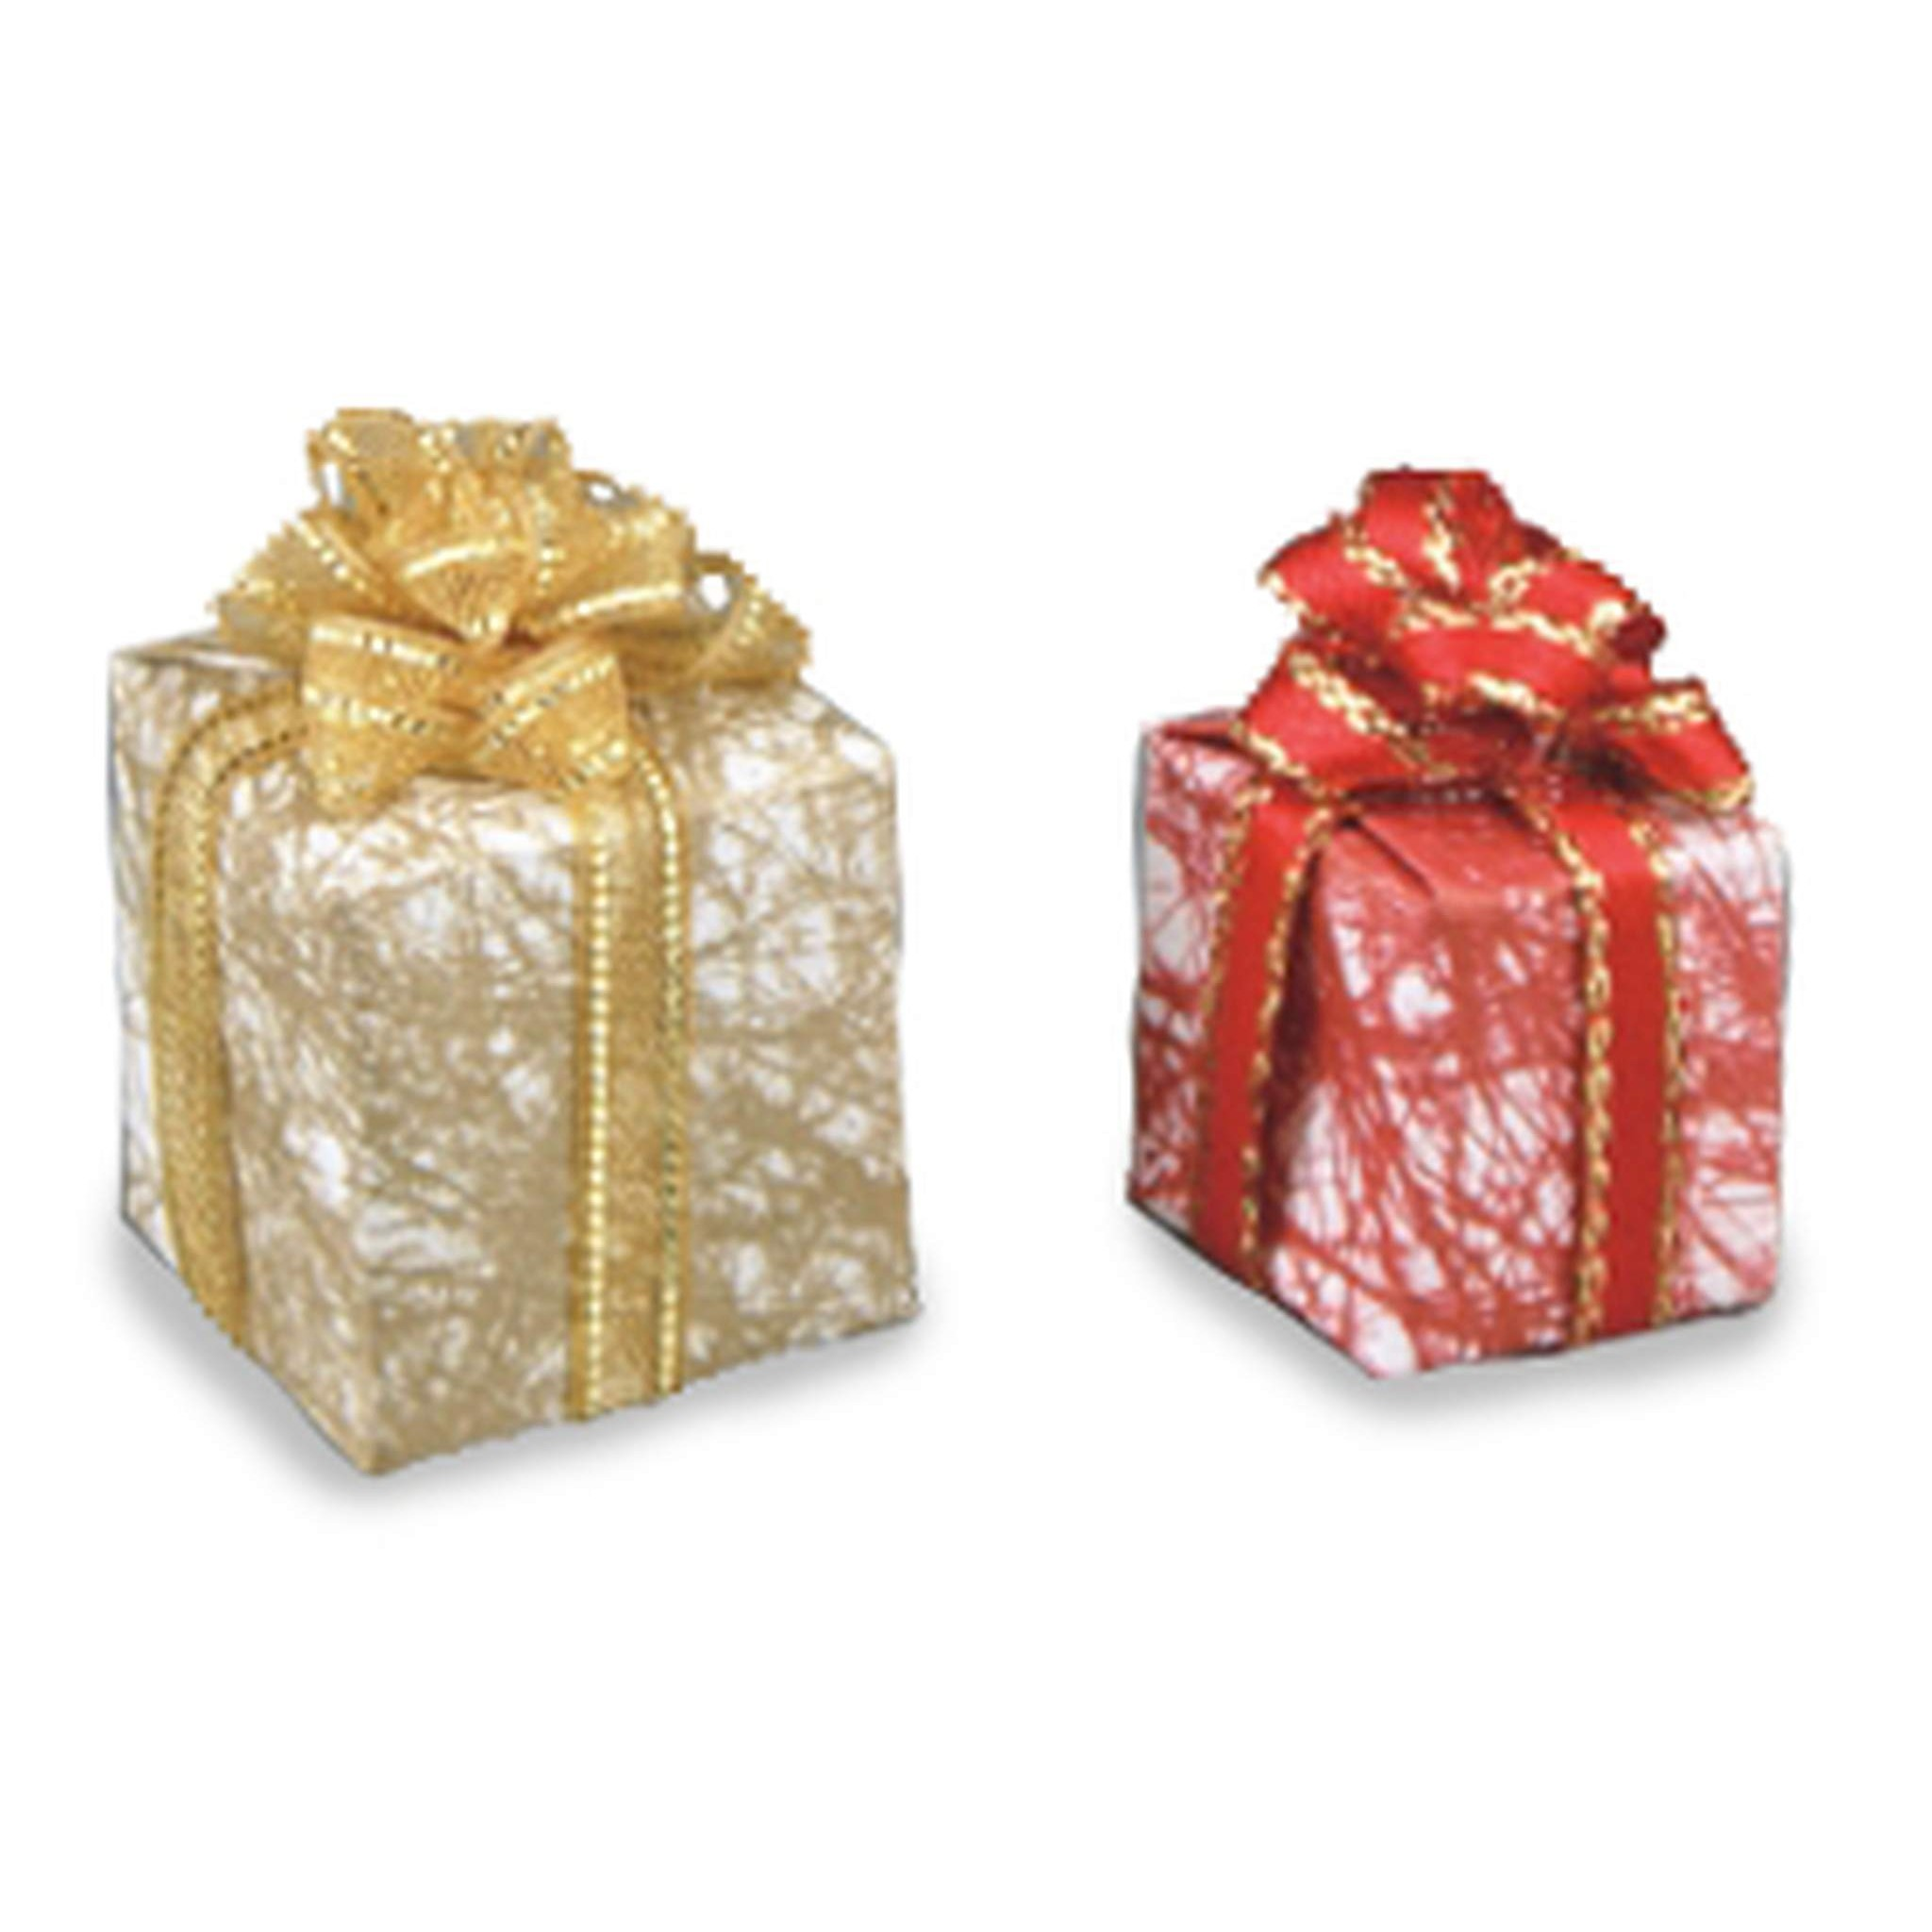 Reutters gift wrapped presents 2 pieces negle Images